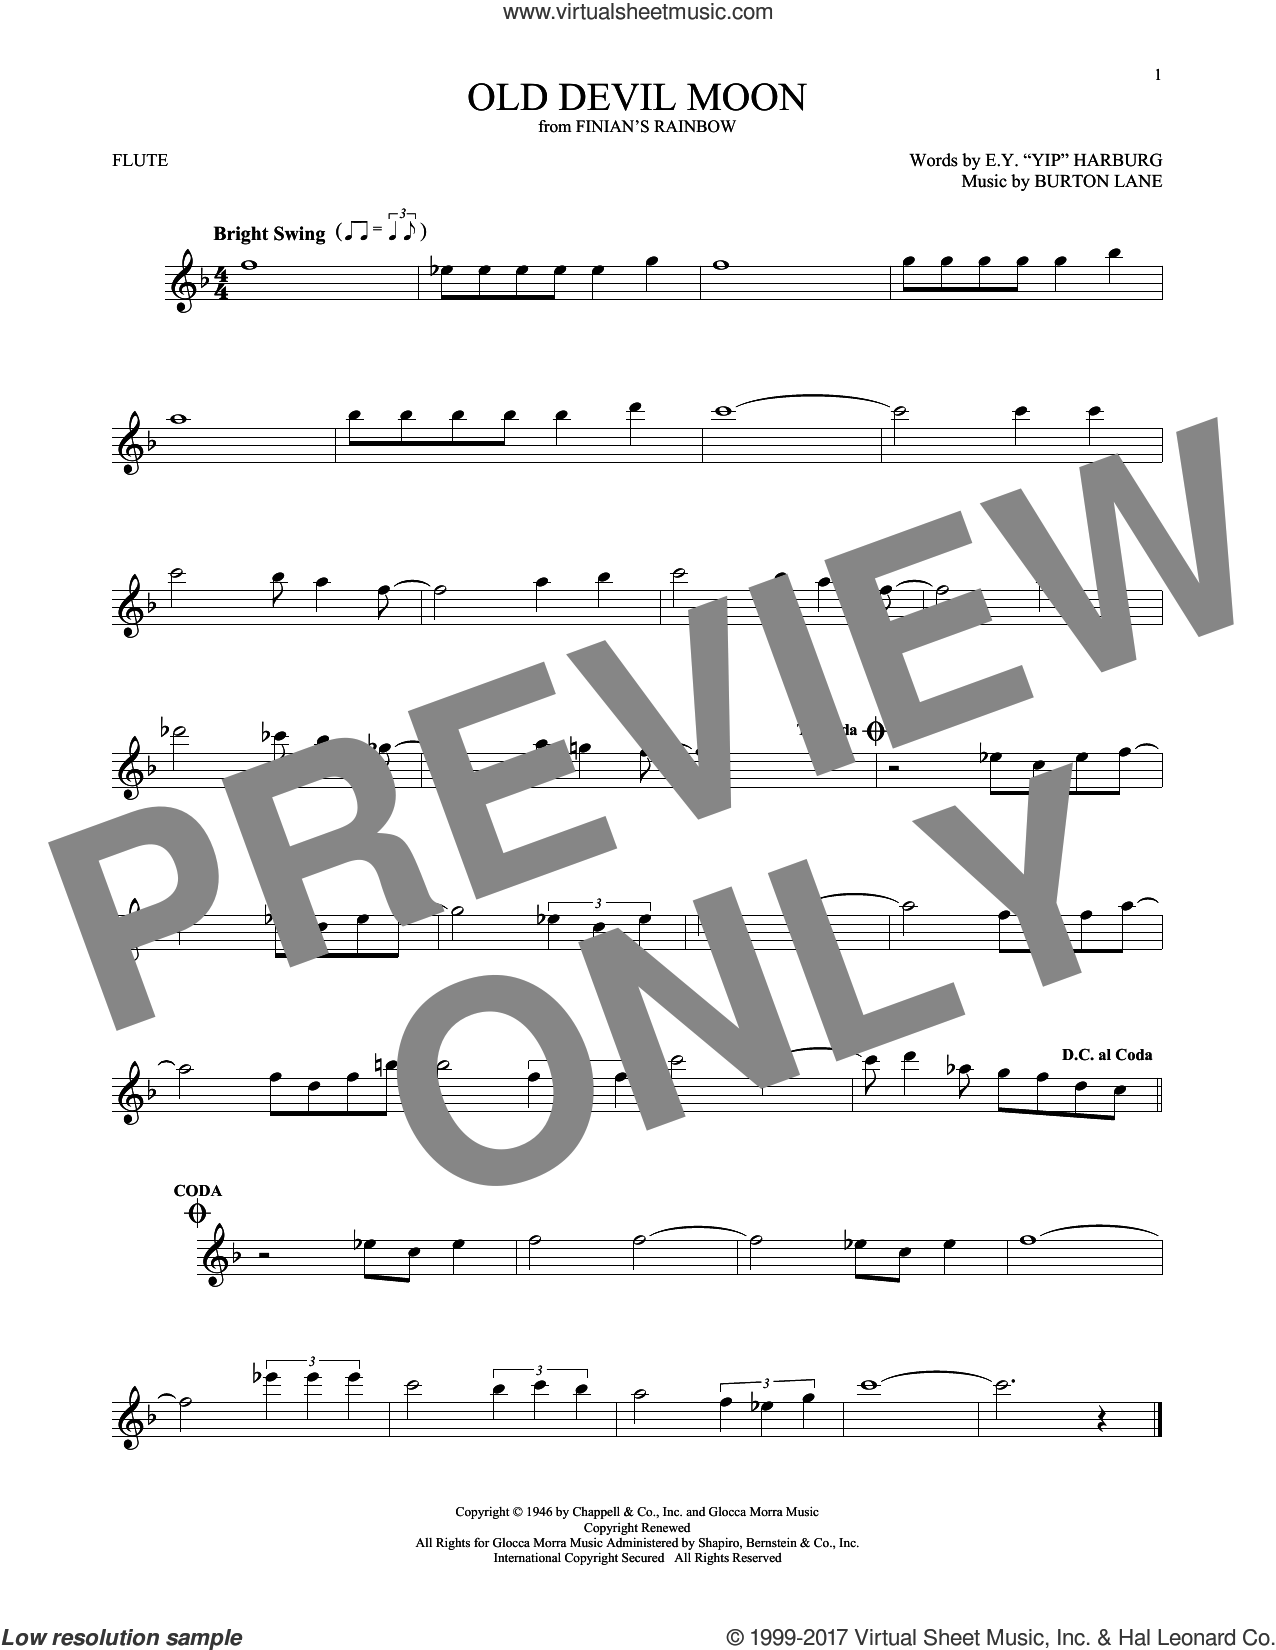 Old Devil Moon sheet music for flute solo by E.Y. Harburg and Burton Lane, intermediate skill level